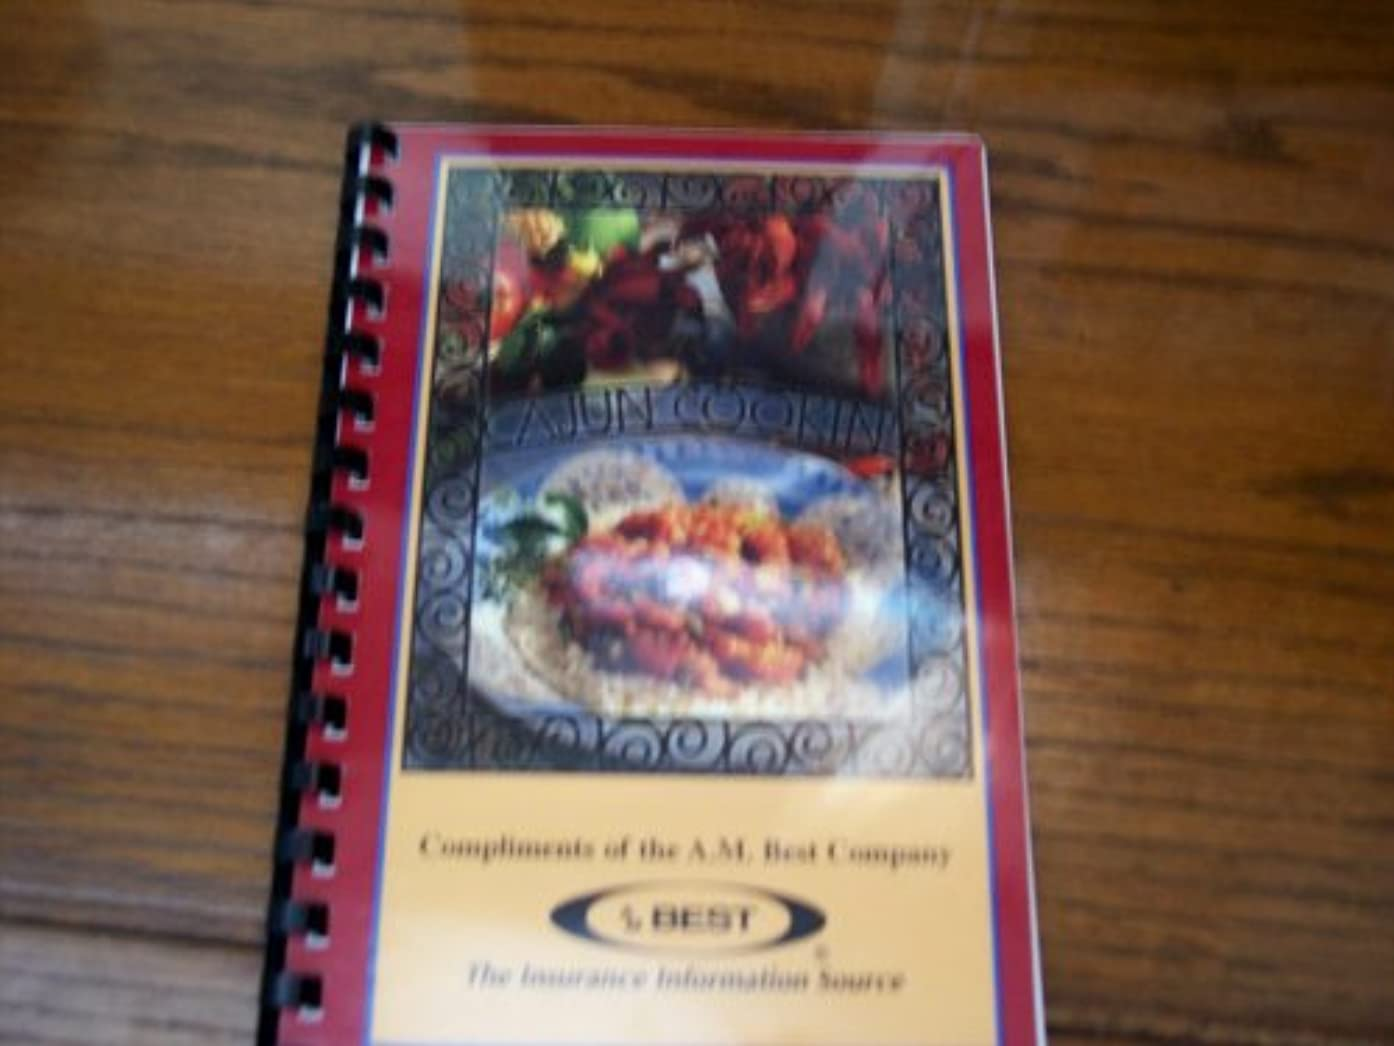 Cajun Cooking (Compliments of the A.M. Best Company~The Insurance Information Source)